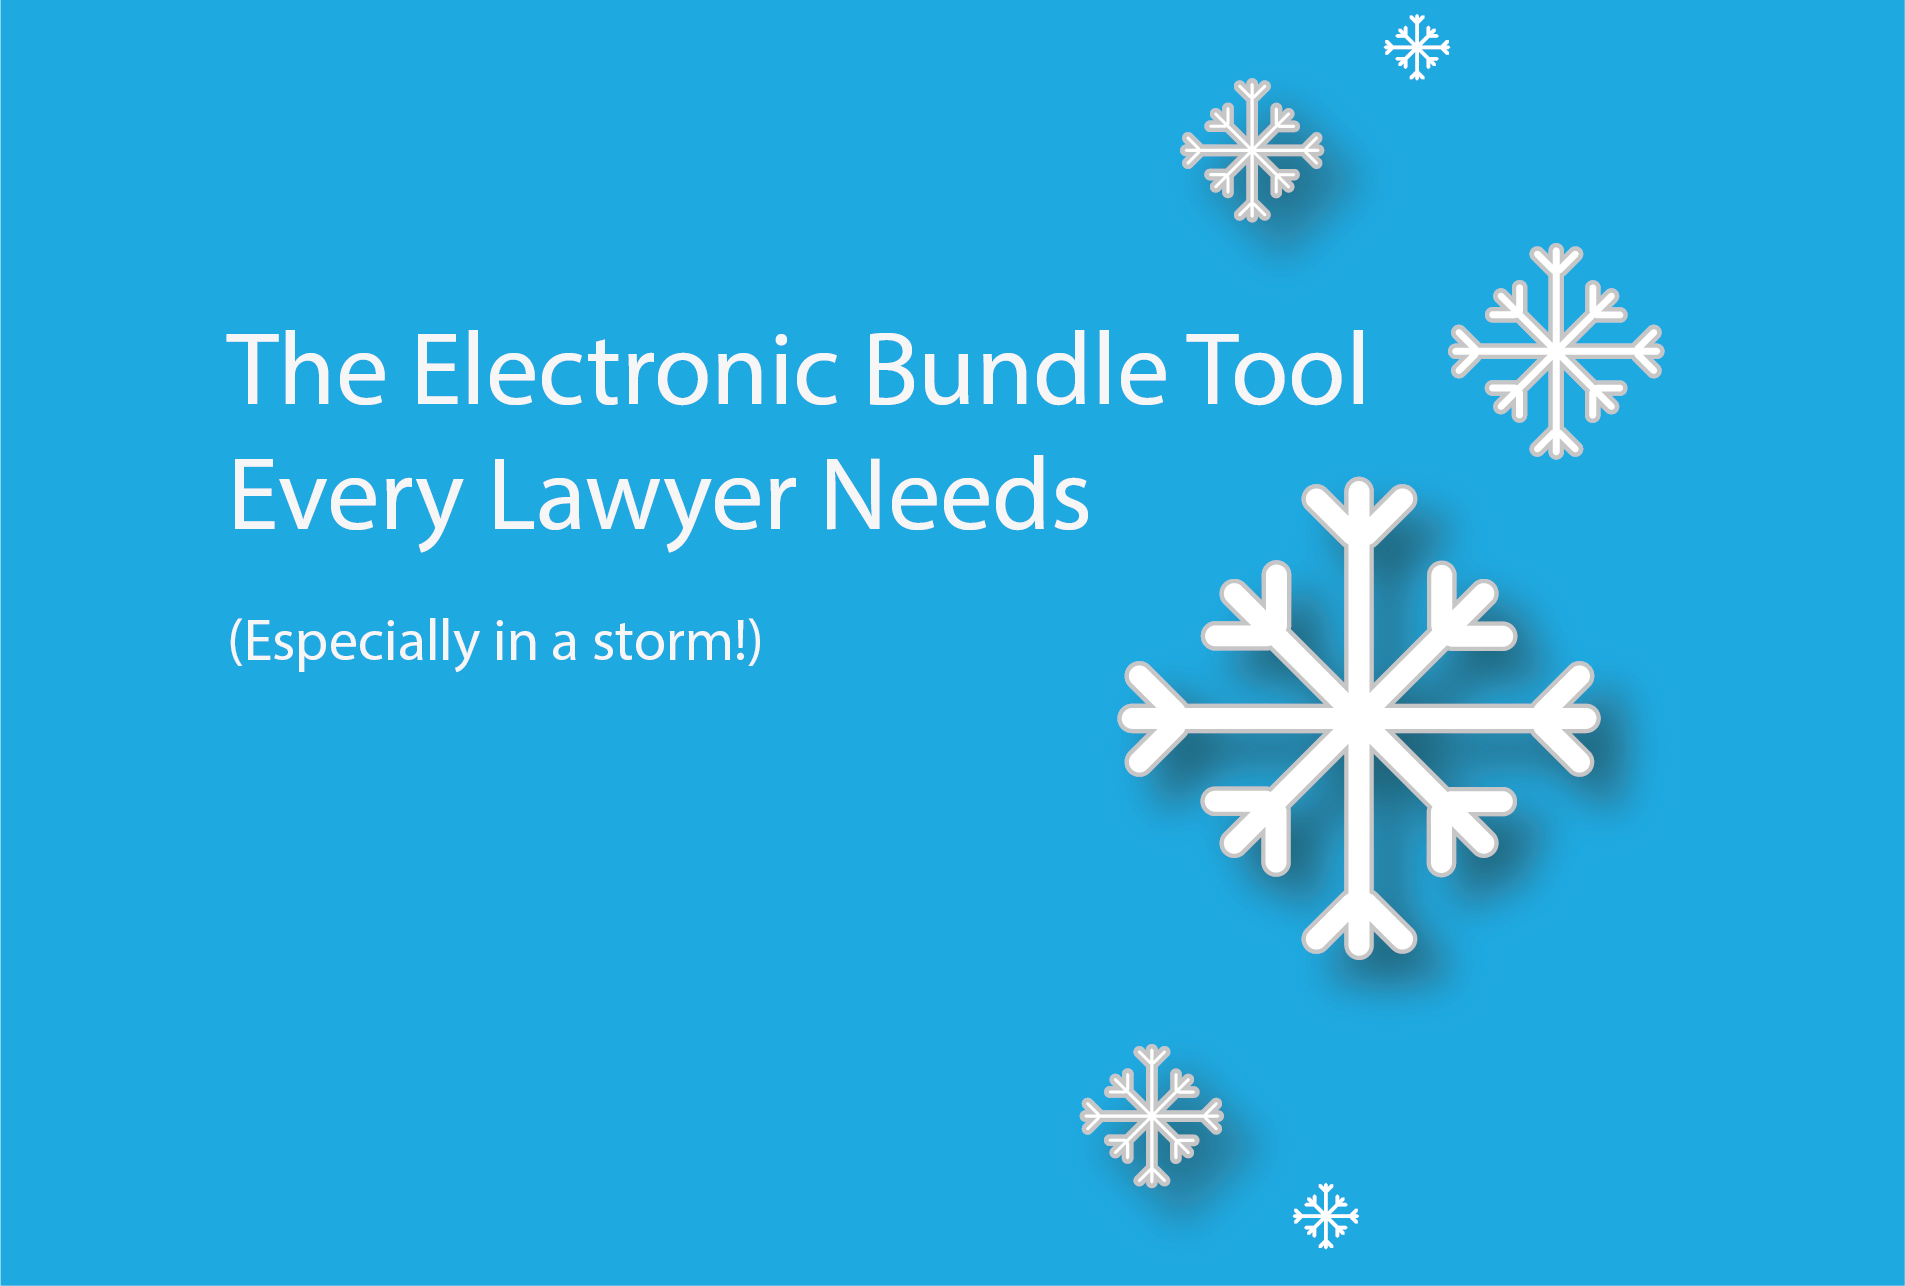 Electronic_Bundle_Tool_Every_Lawyer_Needs_Storm_Emma.png